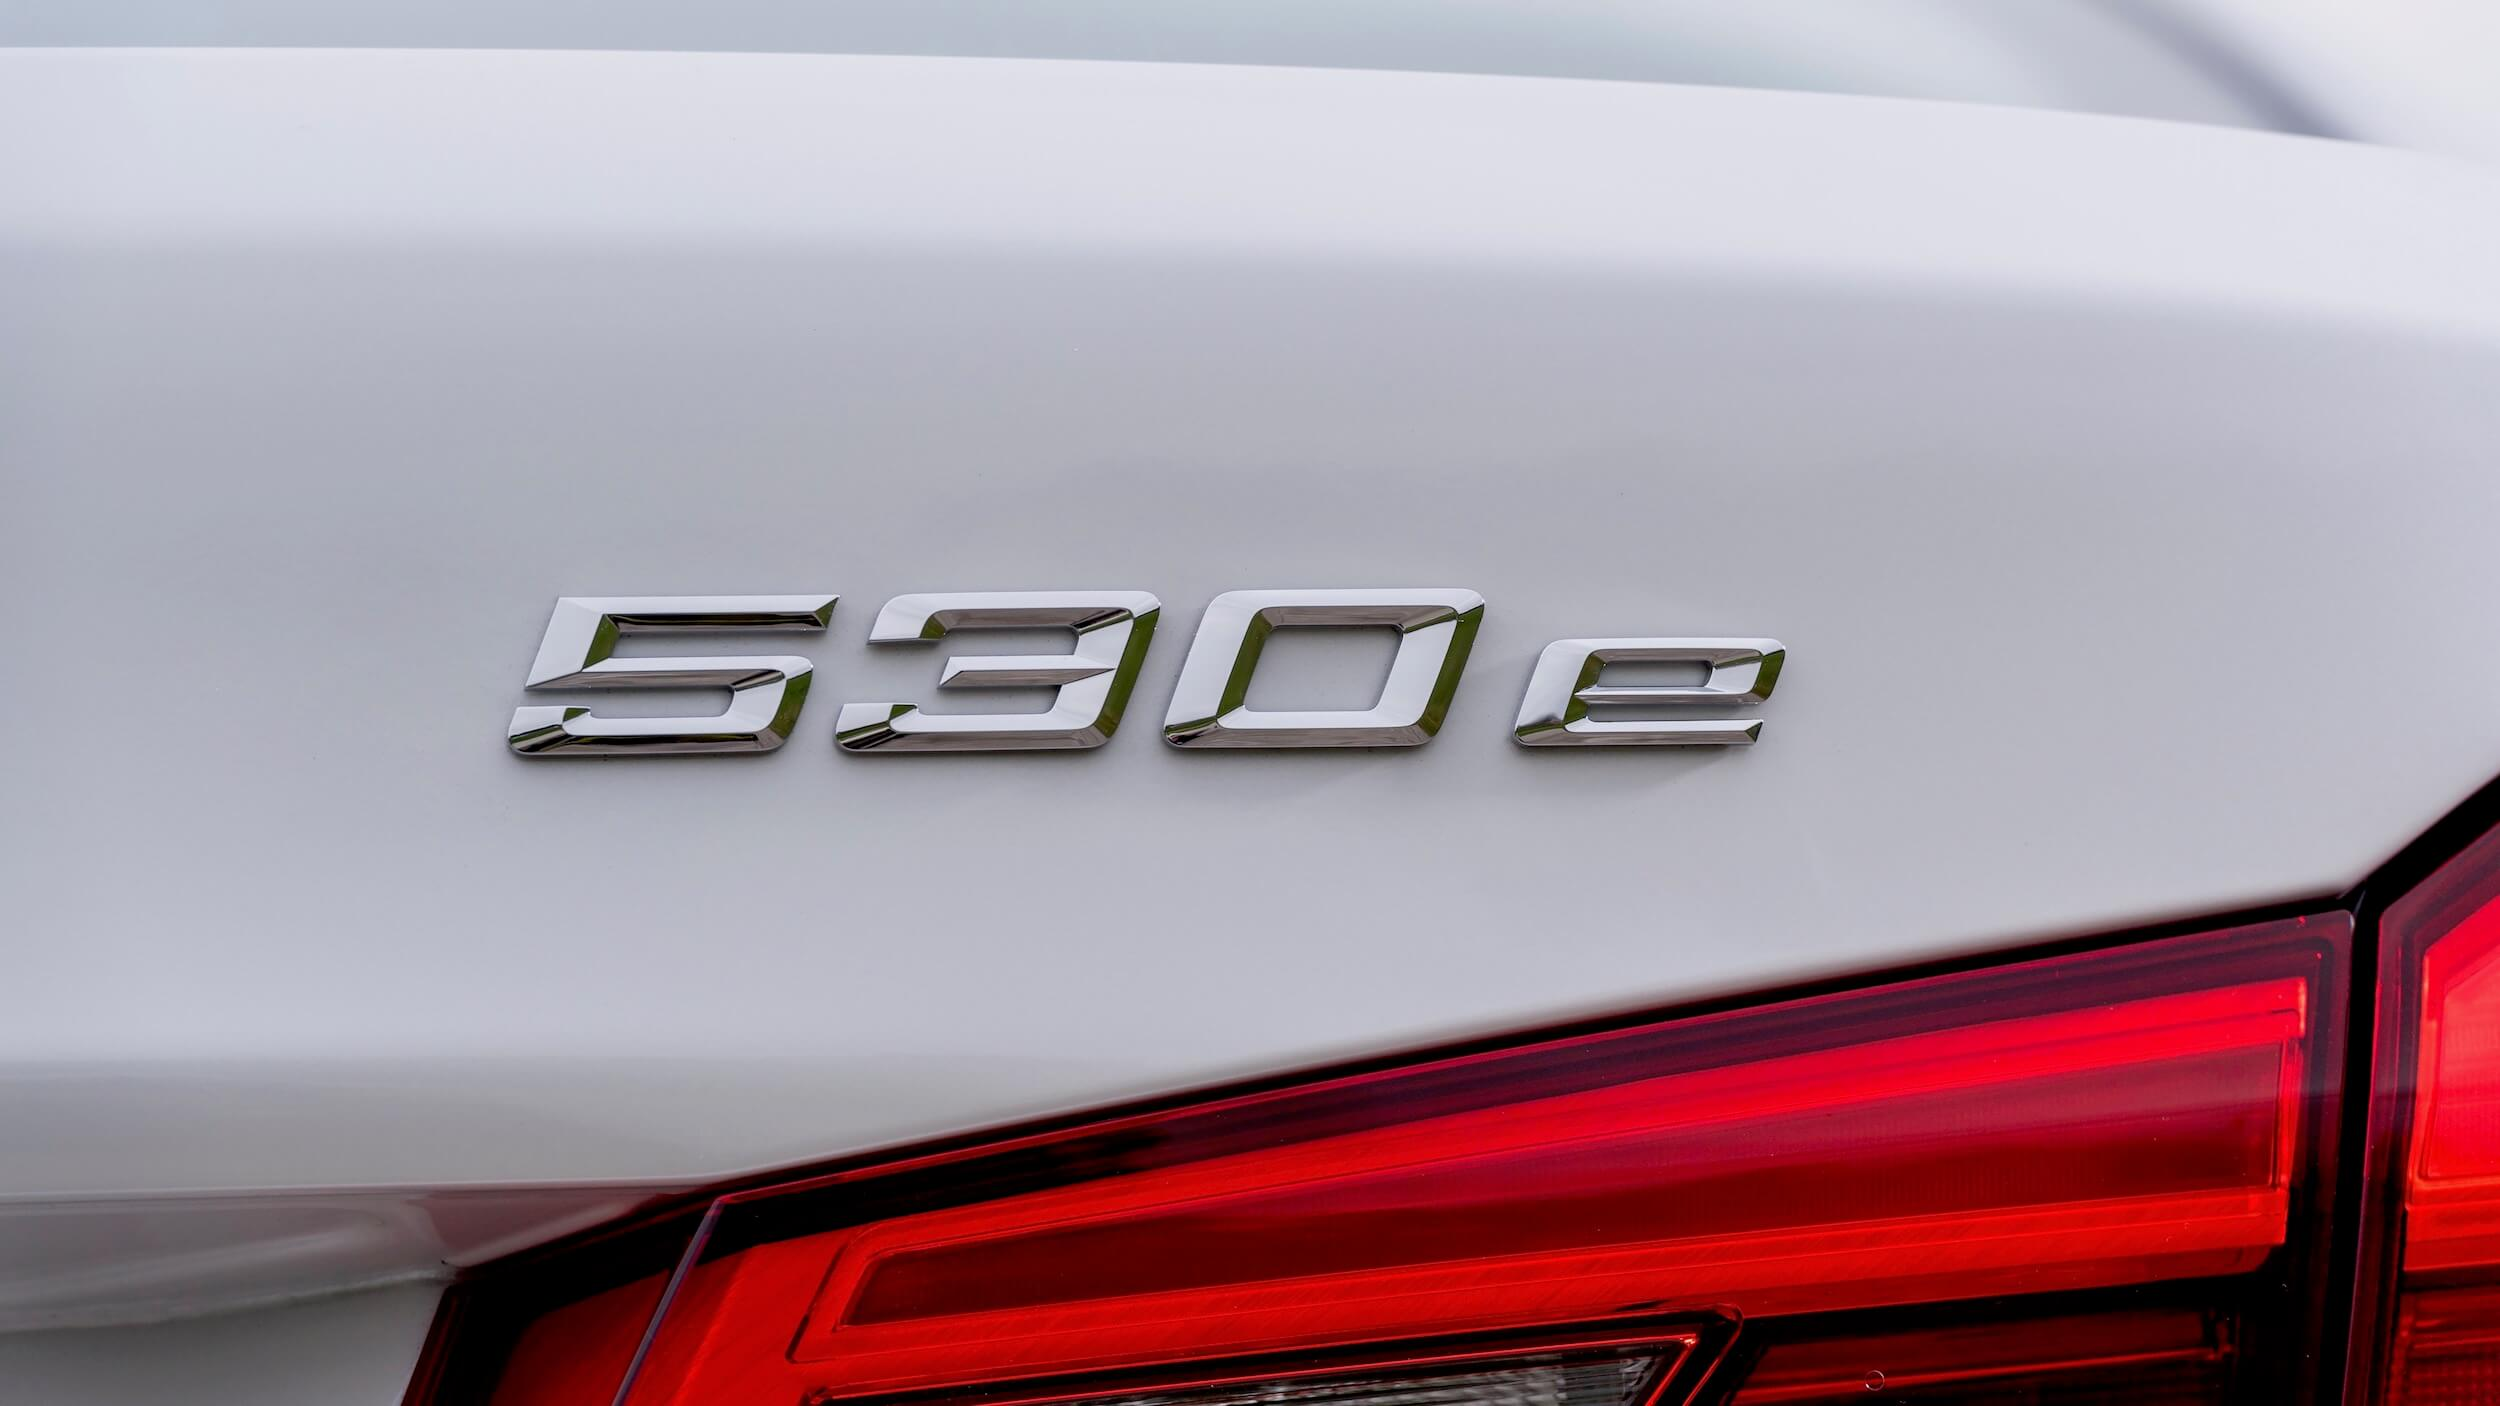 BMW 530e badge